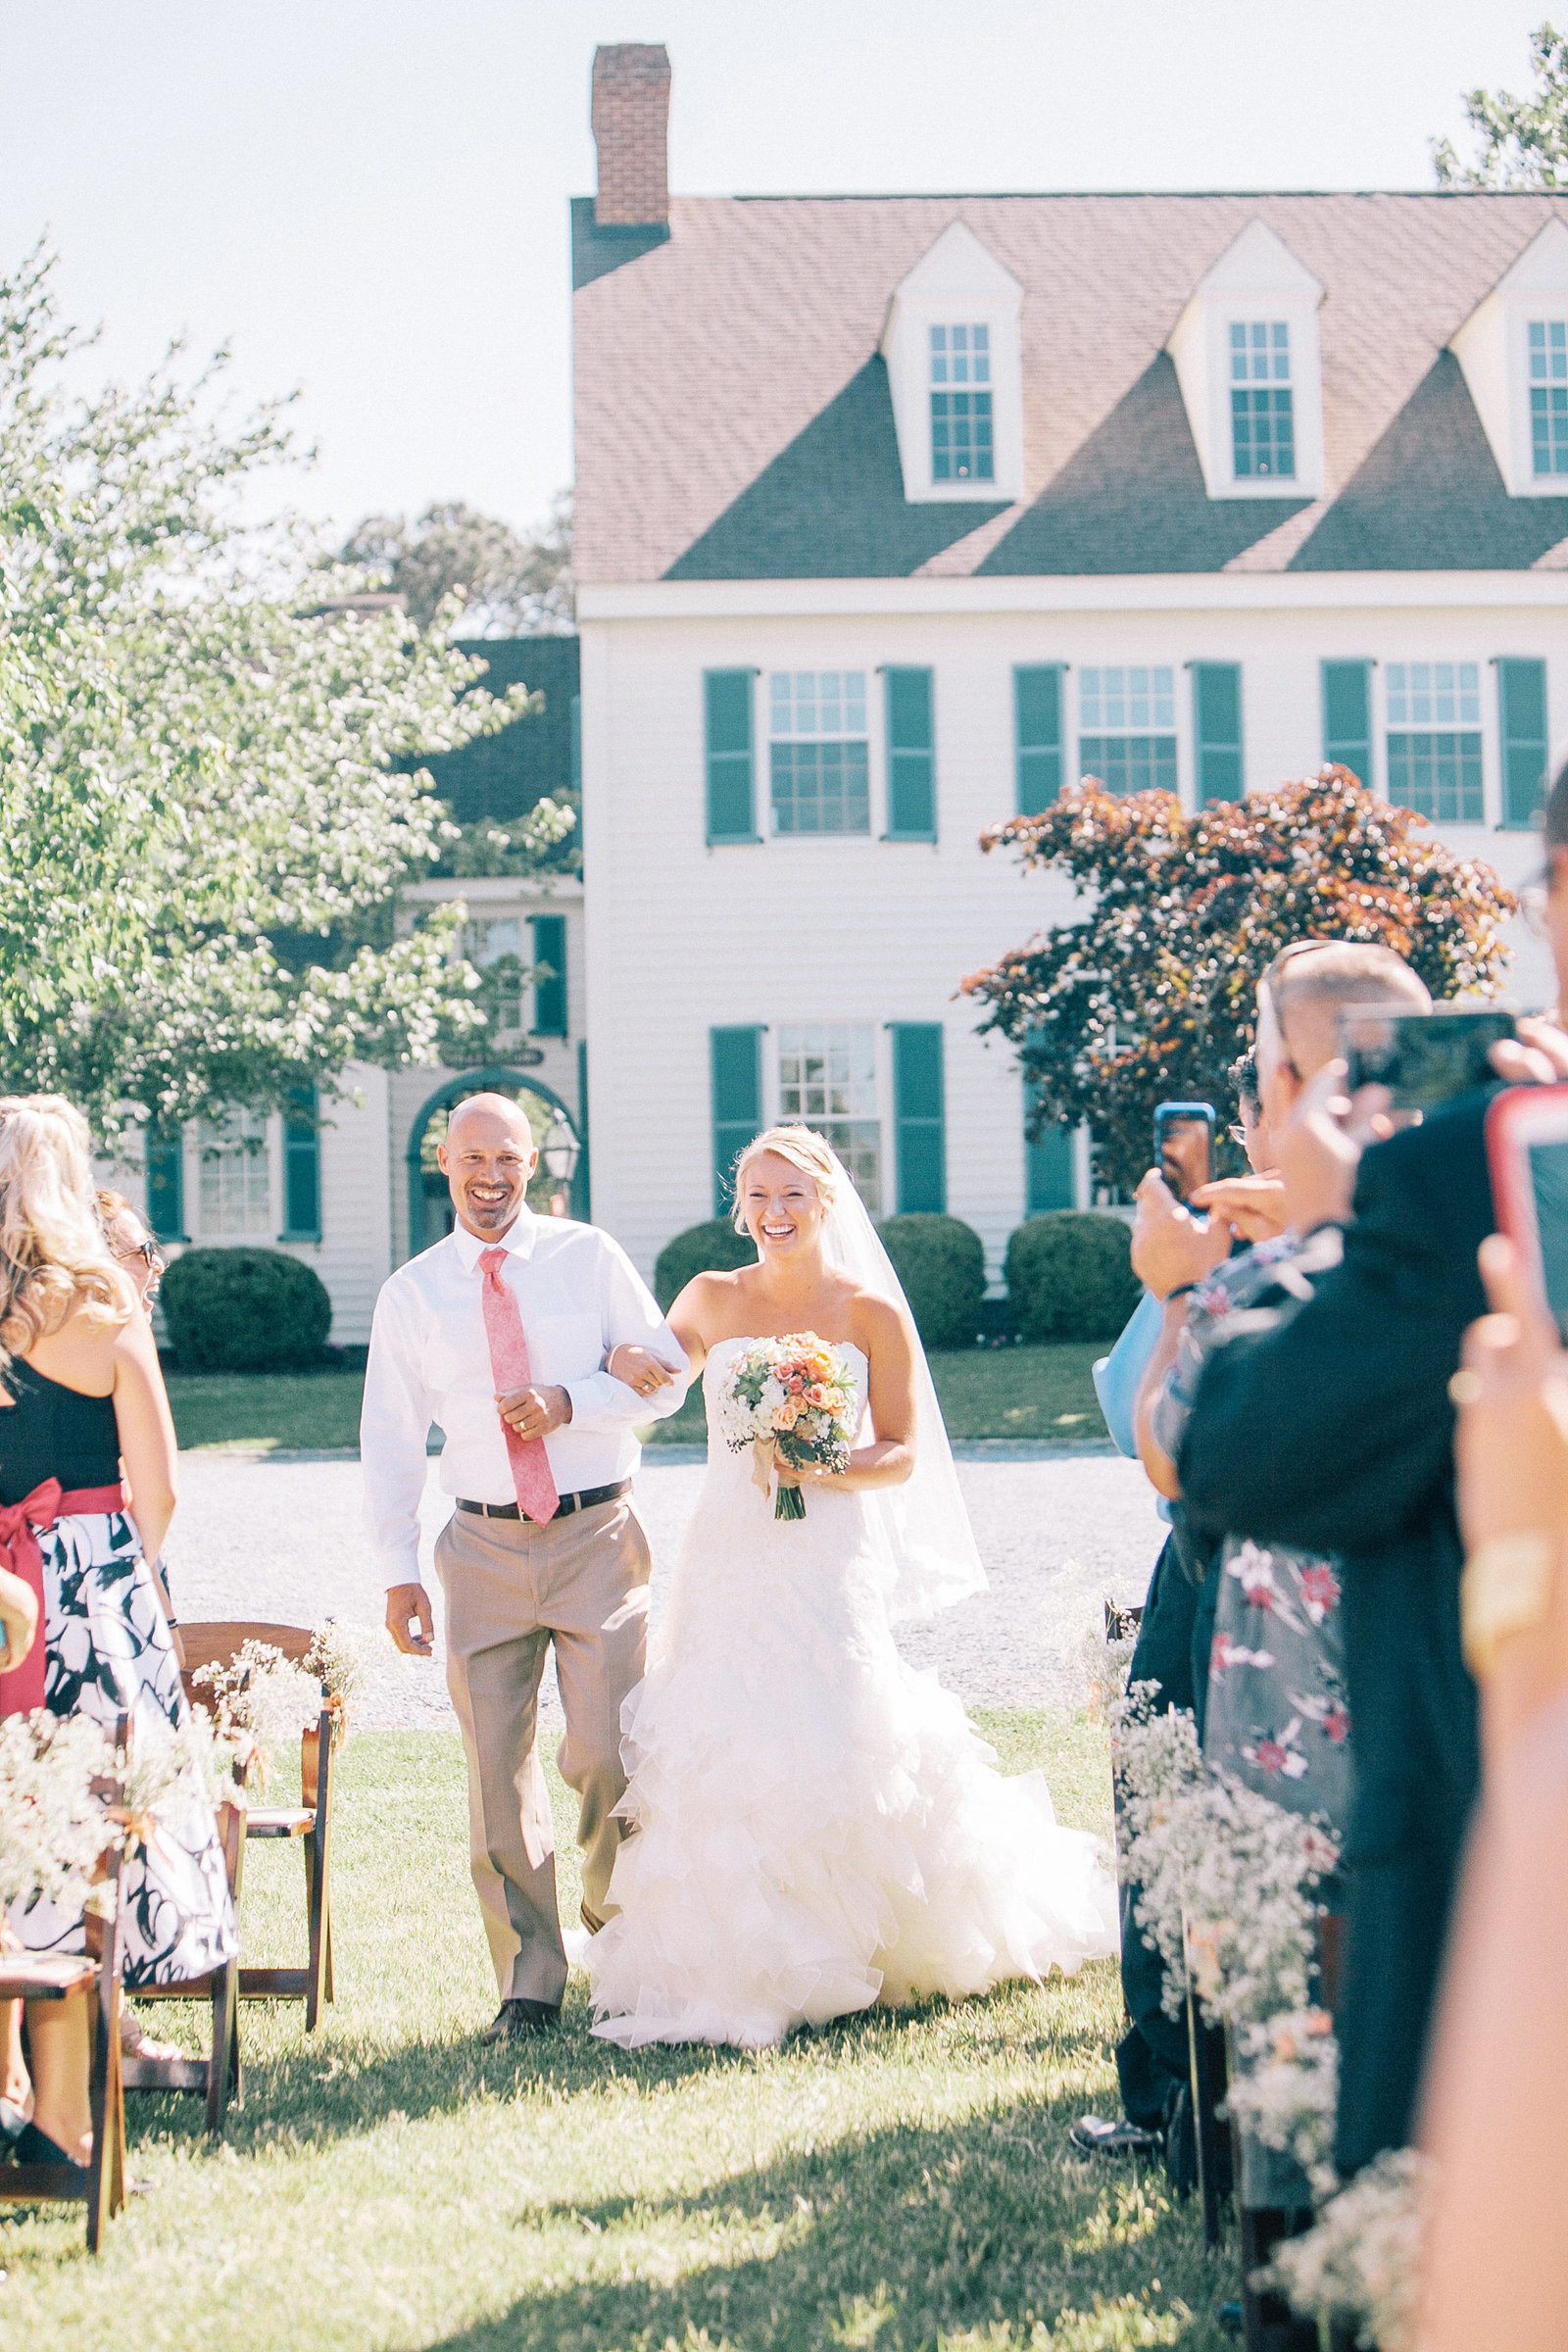 34Devin_Ben_AstridPhotography216Devin_Ben_WeddingIMG_9639